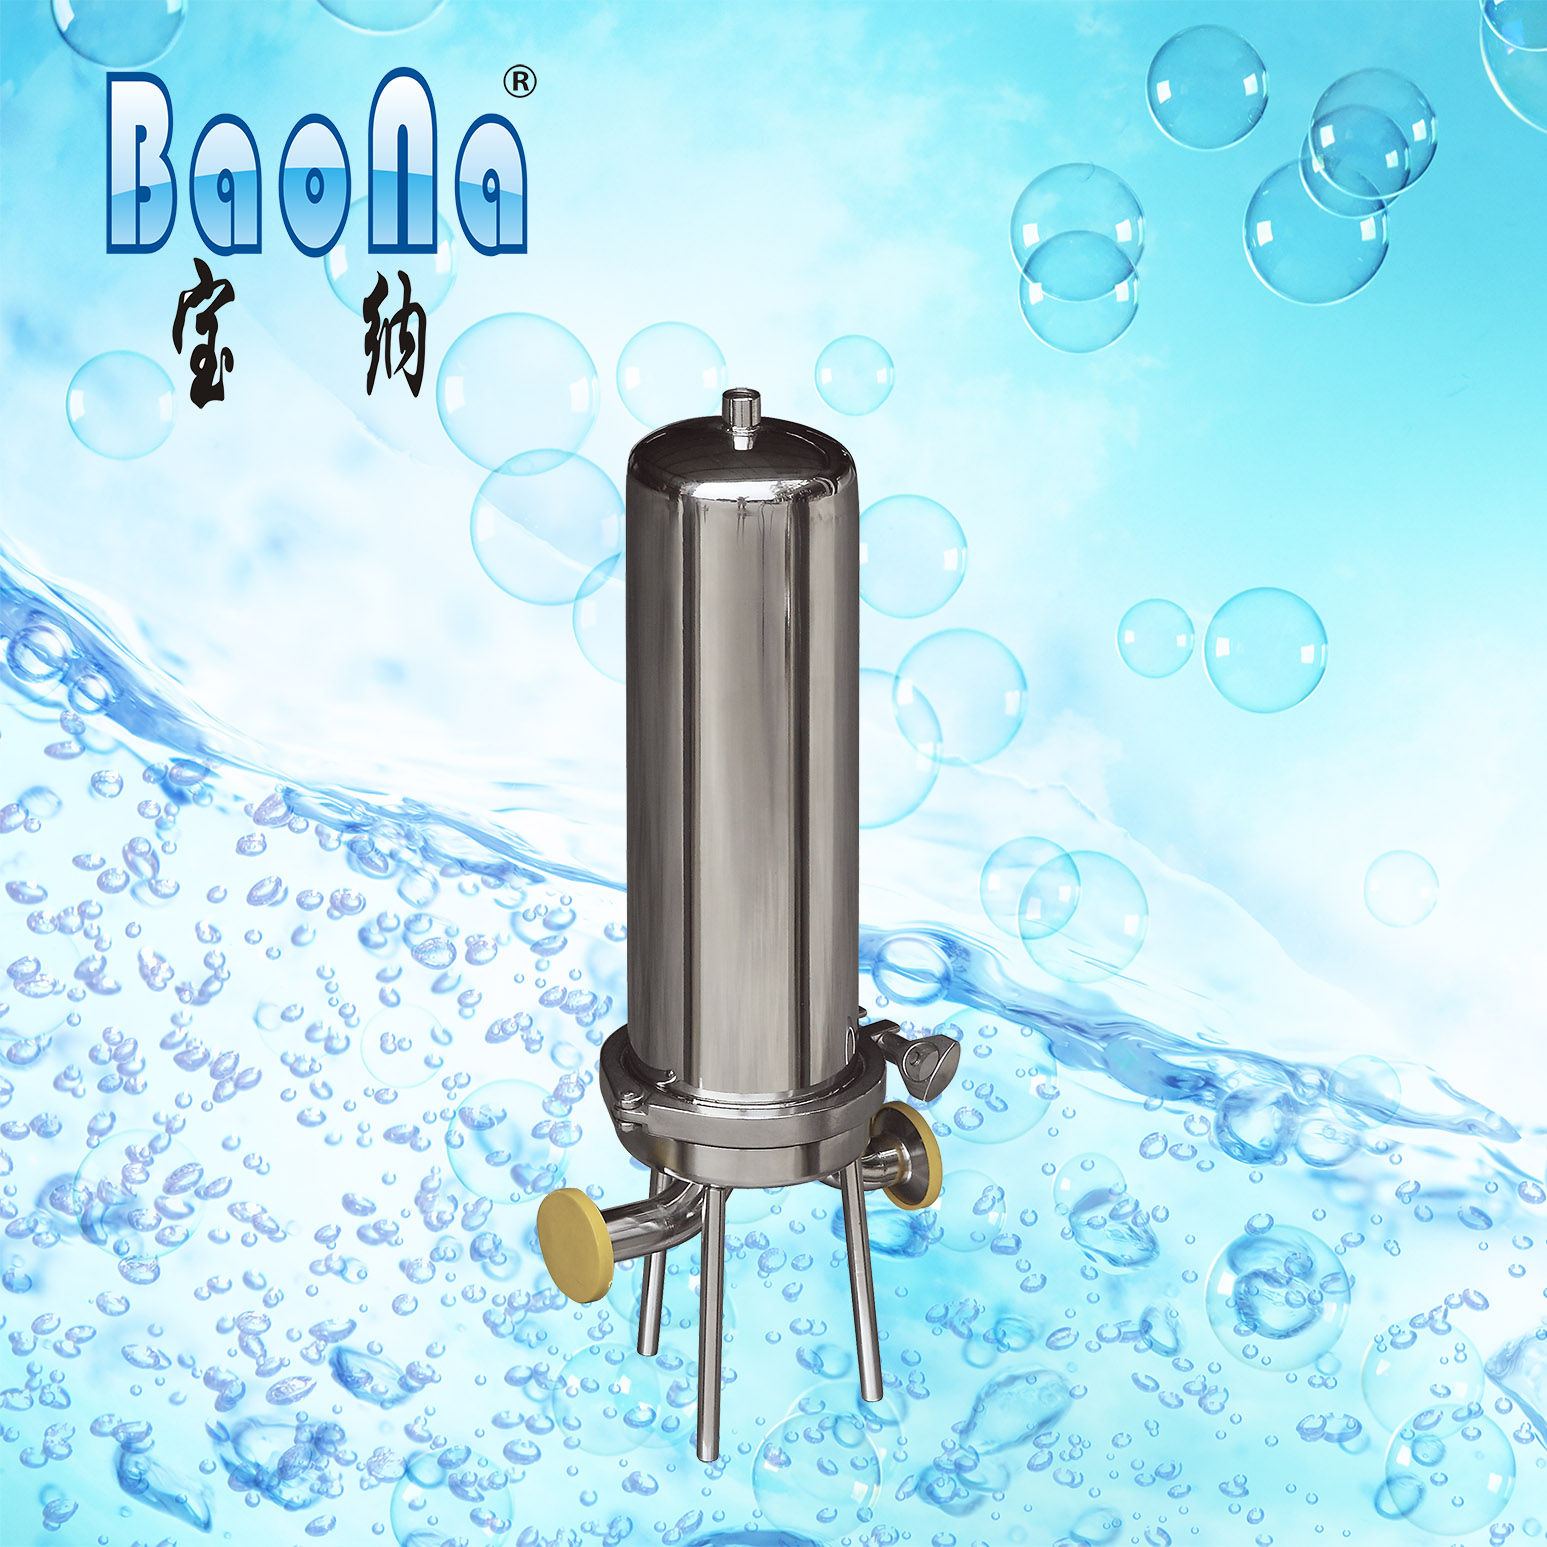 bag filters for water   bag filter housing